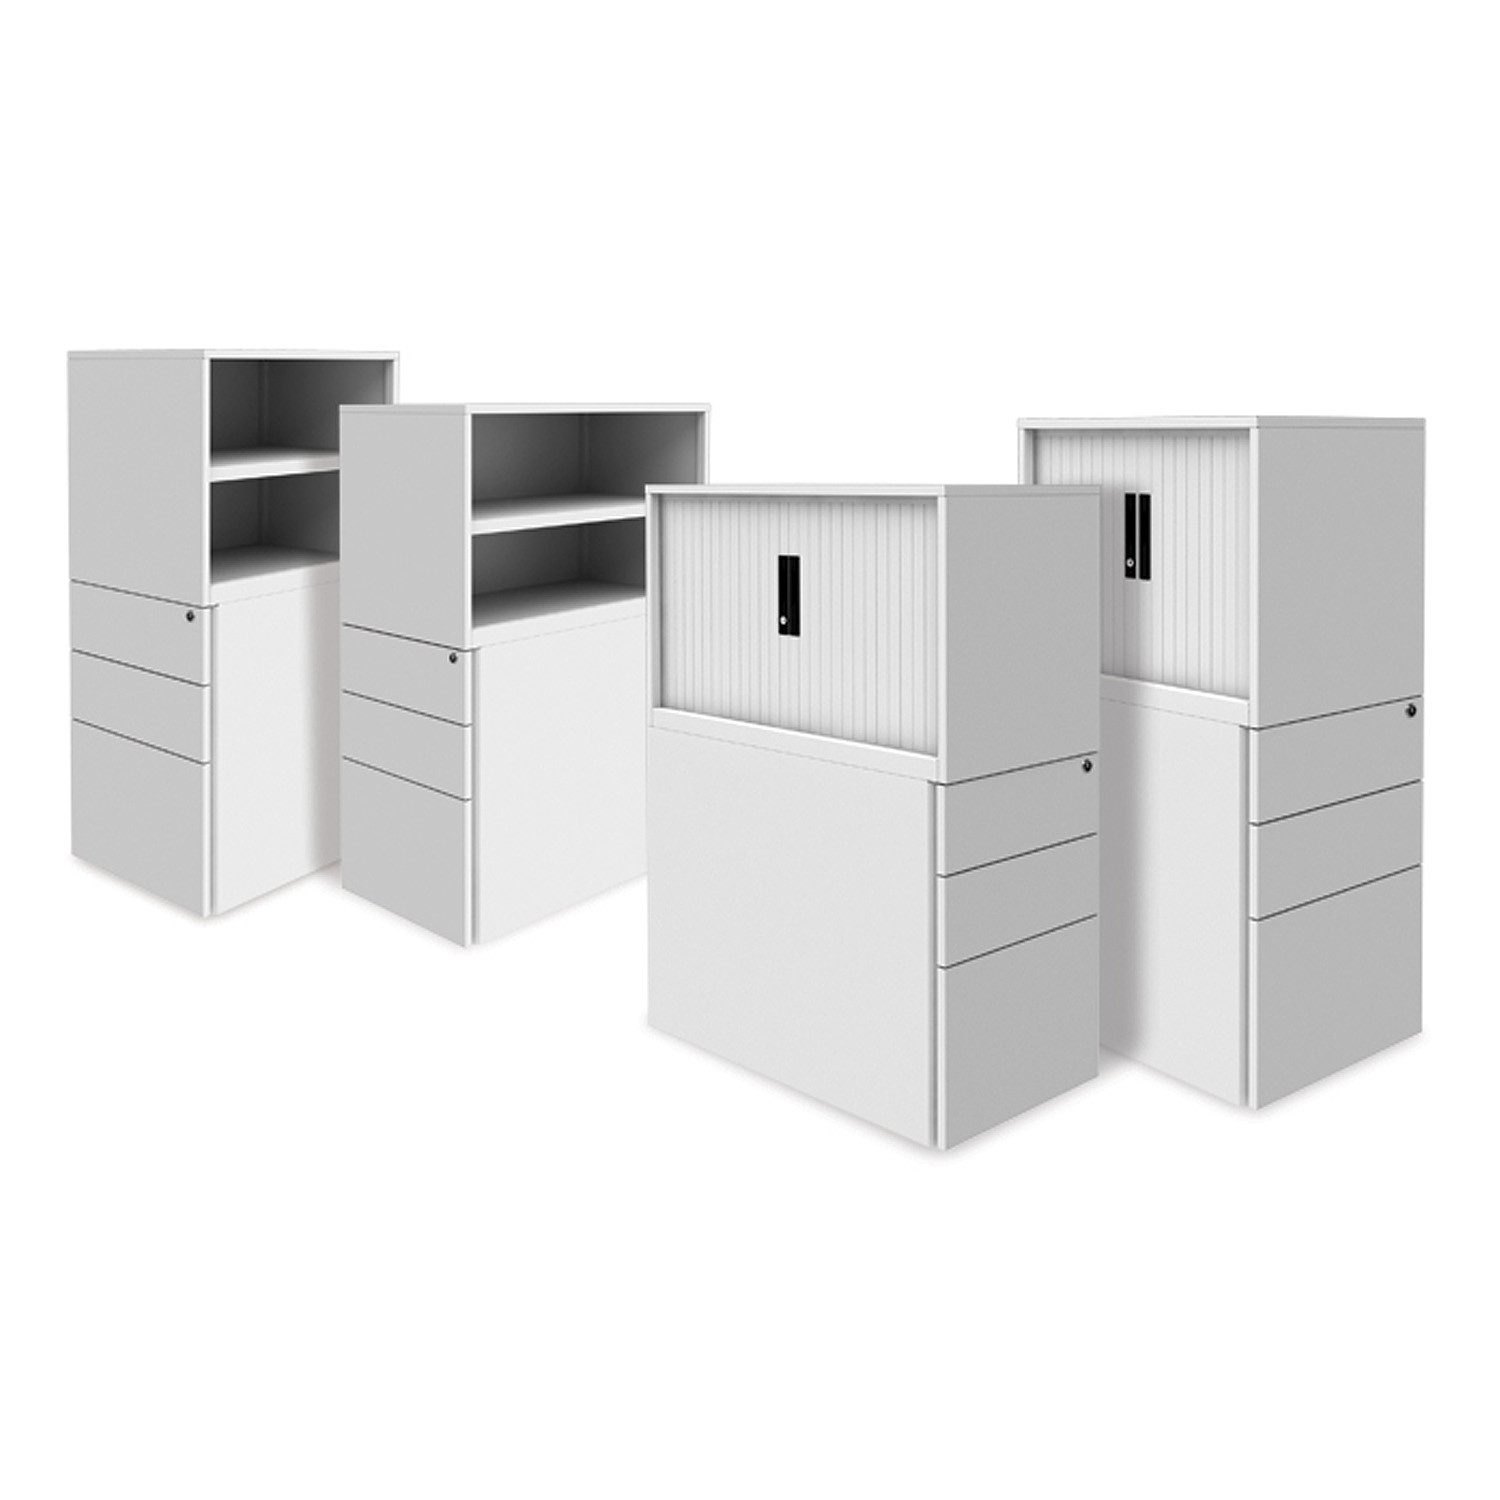 Freedom G3 Pedestals by Silverline